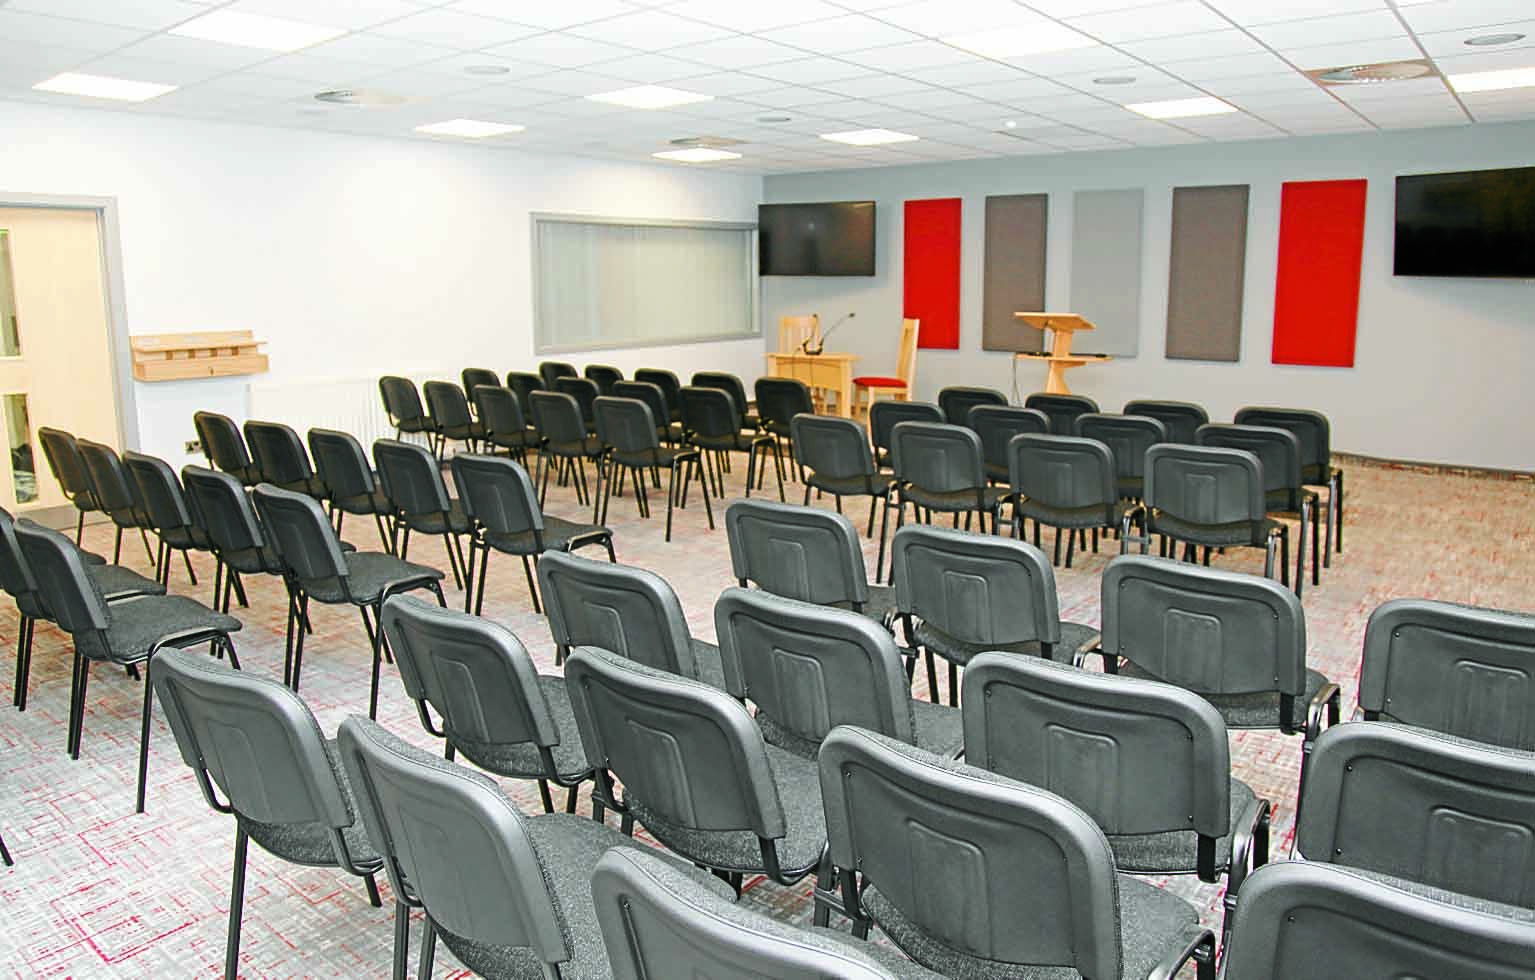 Kingdom Hall to open to the Annan public